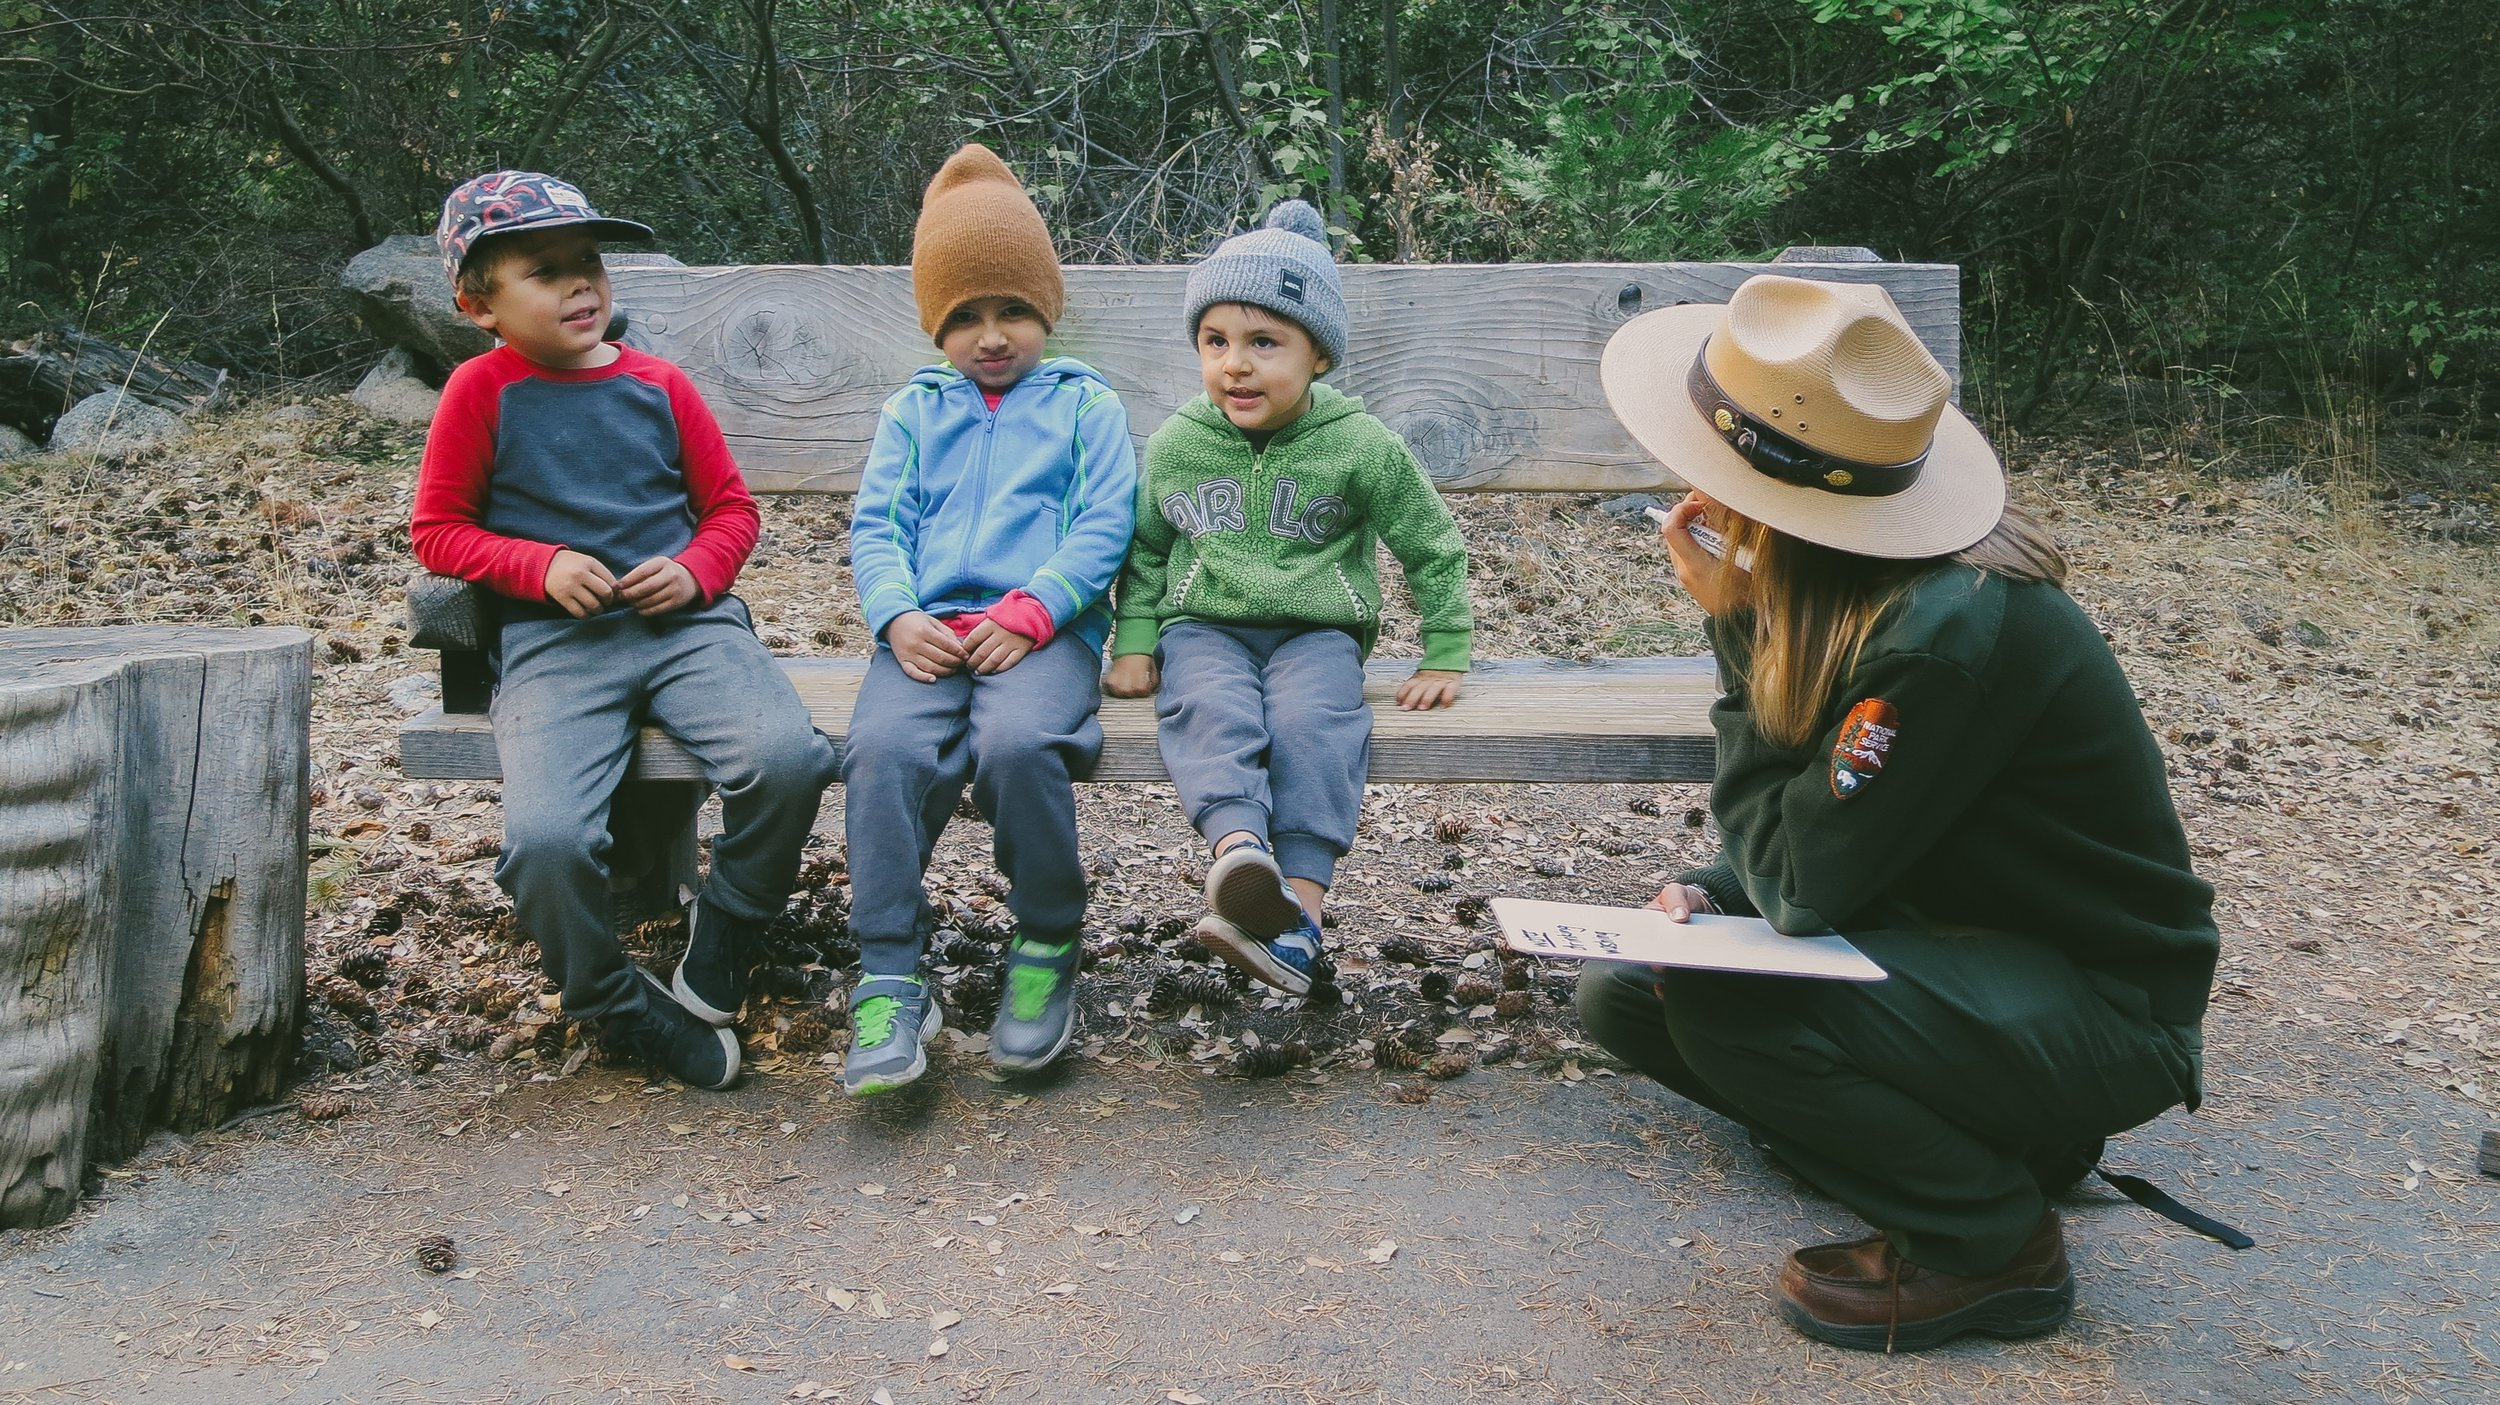 Miles, James and Henry - the Lost Boys, learning about the Yosemite's Rivers + Lakes. Photo:  I Luv Frames